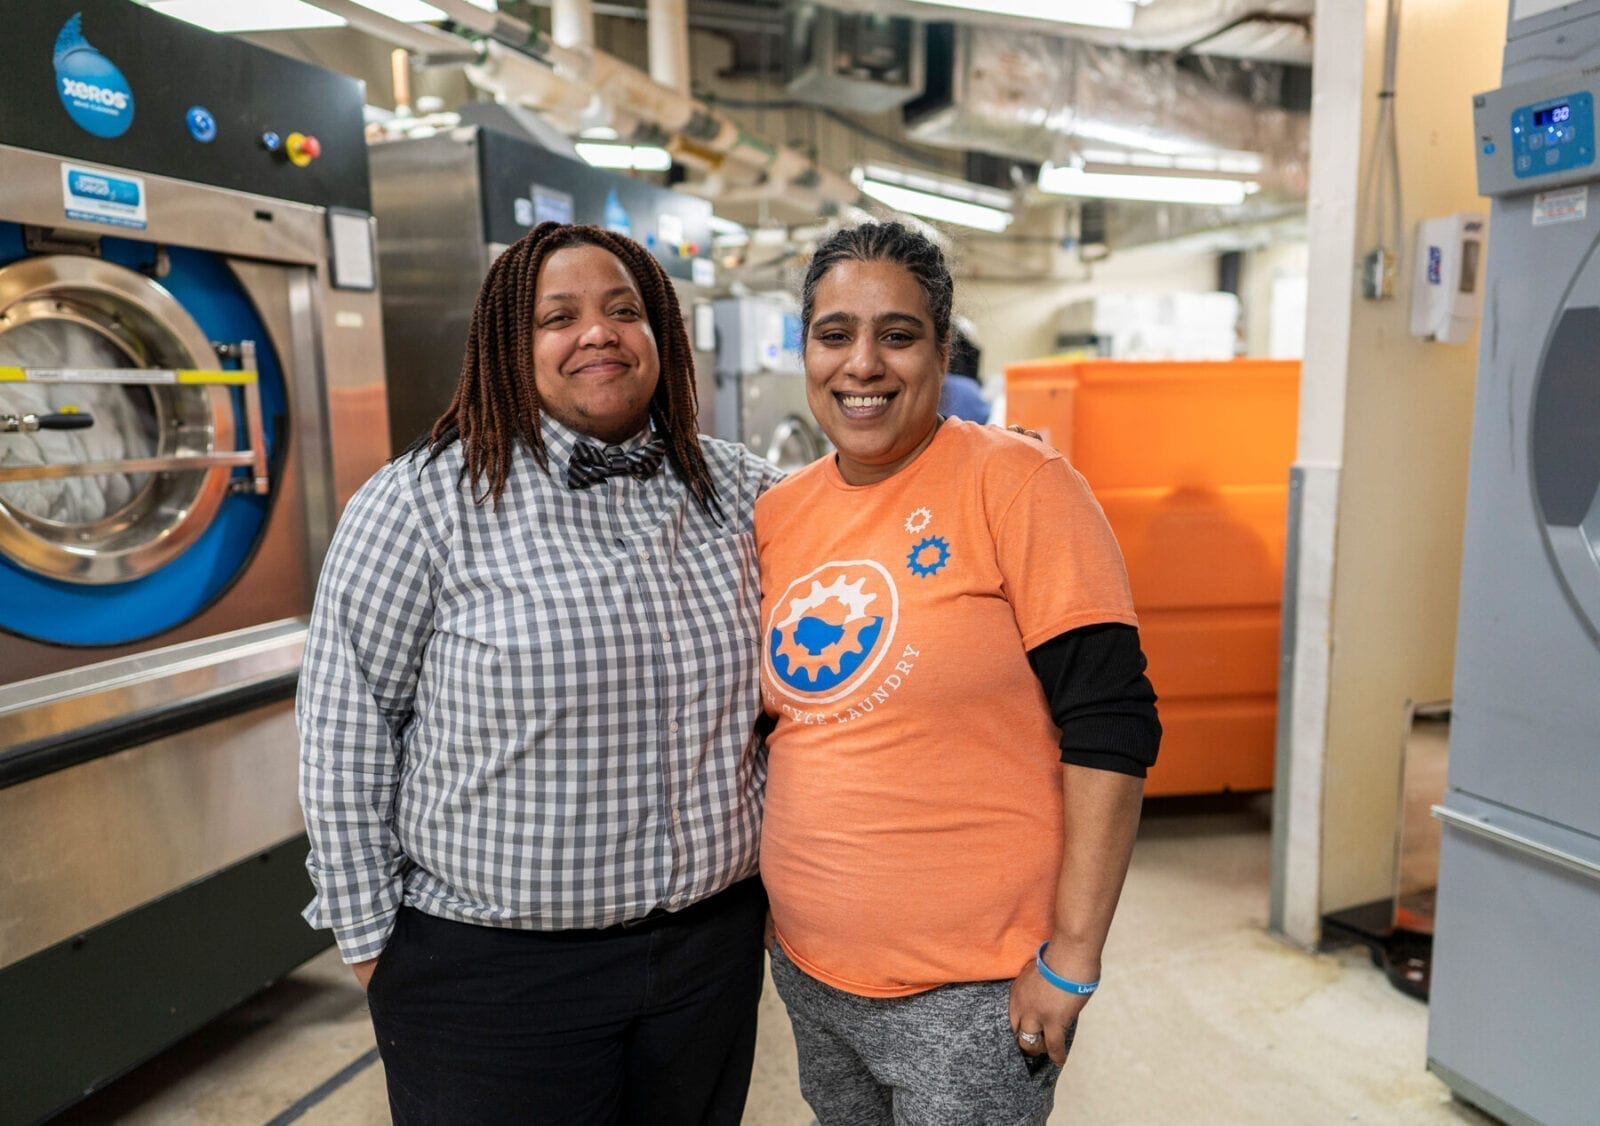 Postindustrial, General Manager Shanelle Morton, left, and Plant Manager Luz Adams, right, at Wash Cycle Laundry in Philadelphia. Photo by Jessica Kourkounis